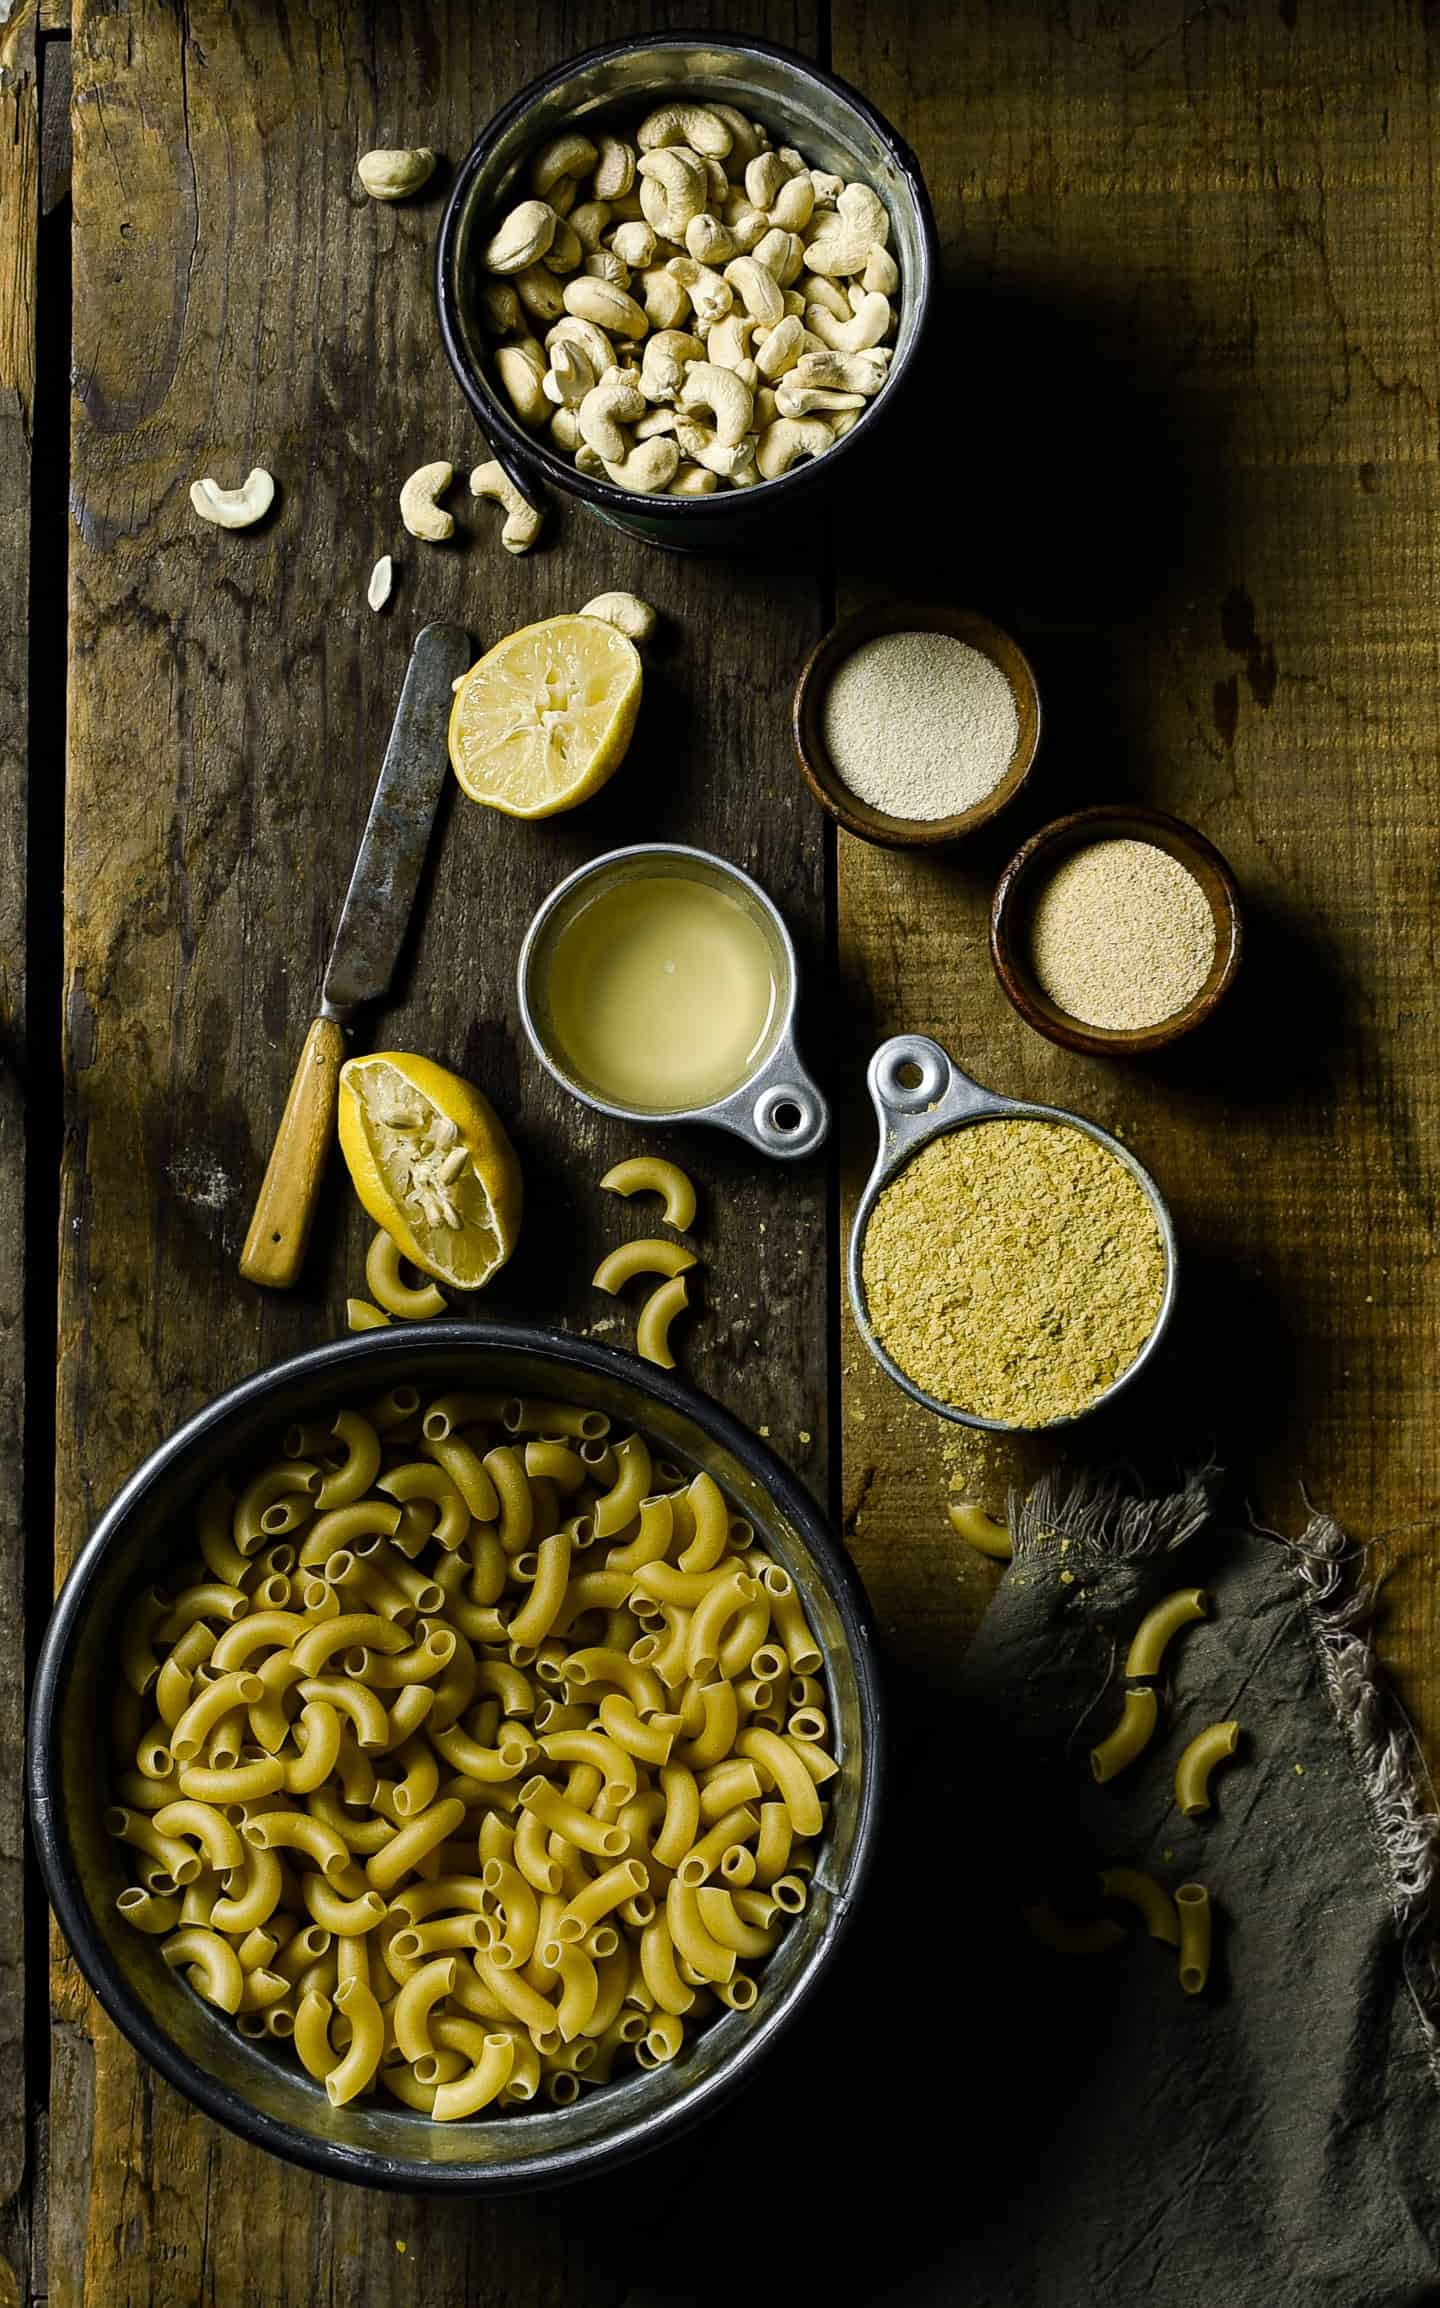 Macaroni and cheese ingredients.